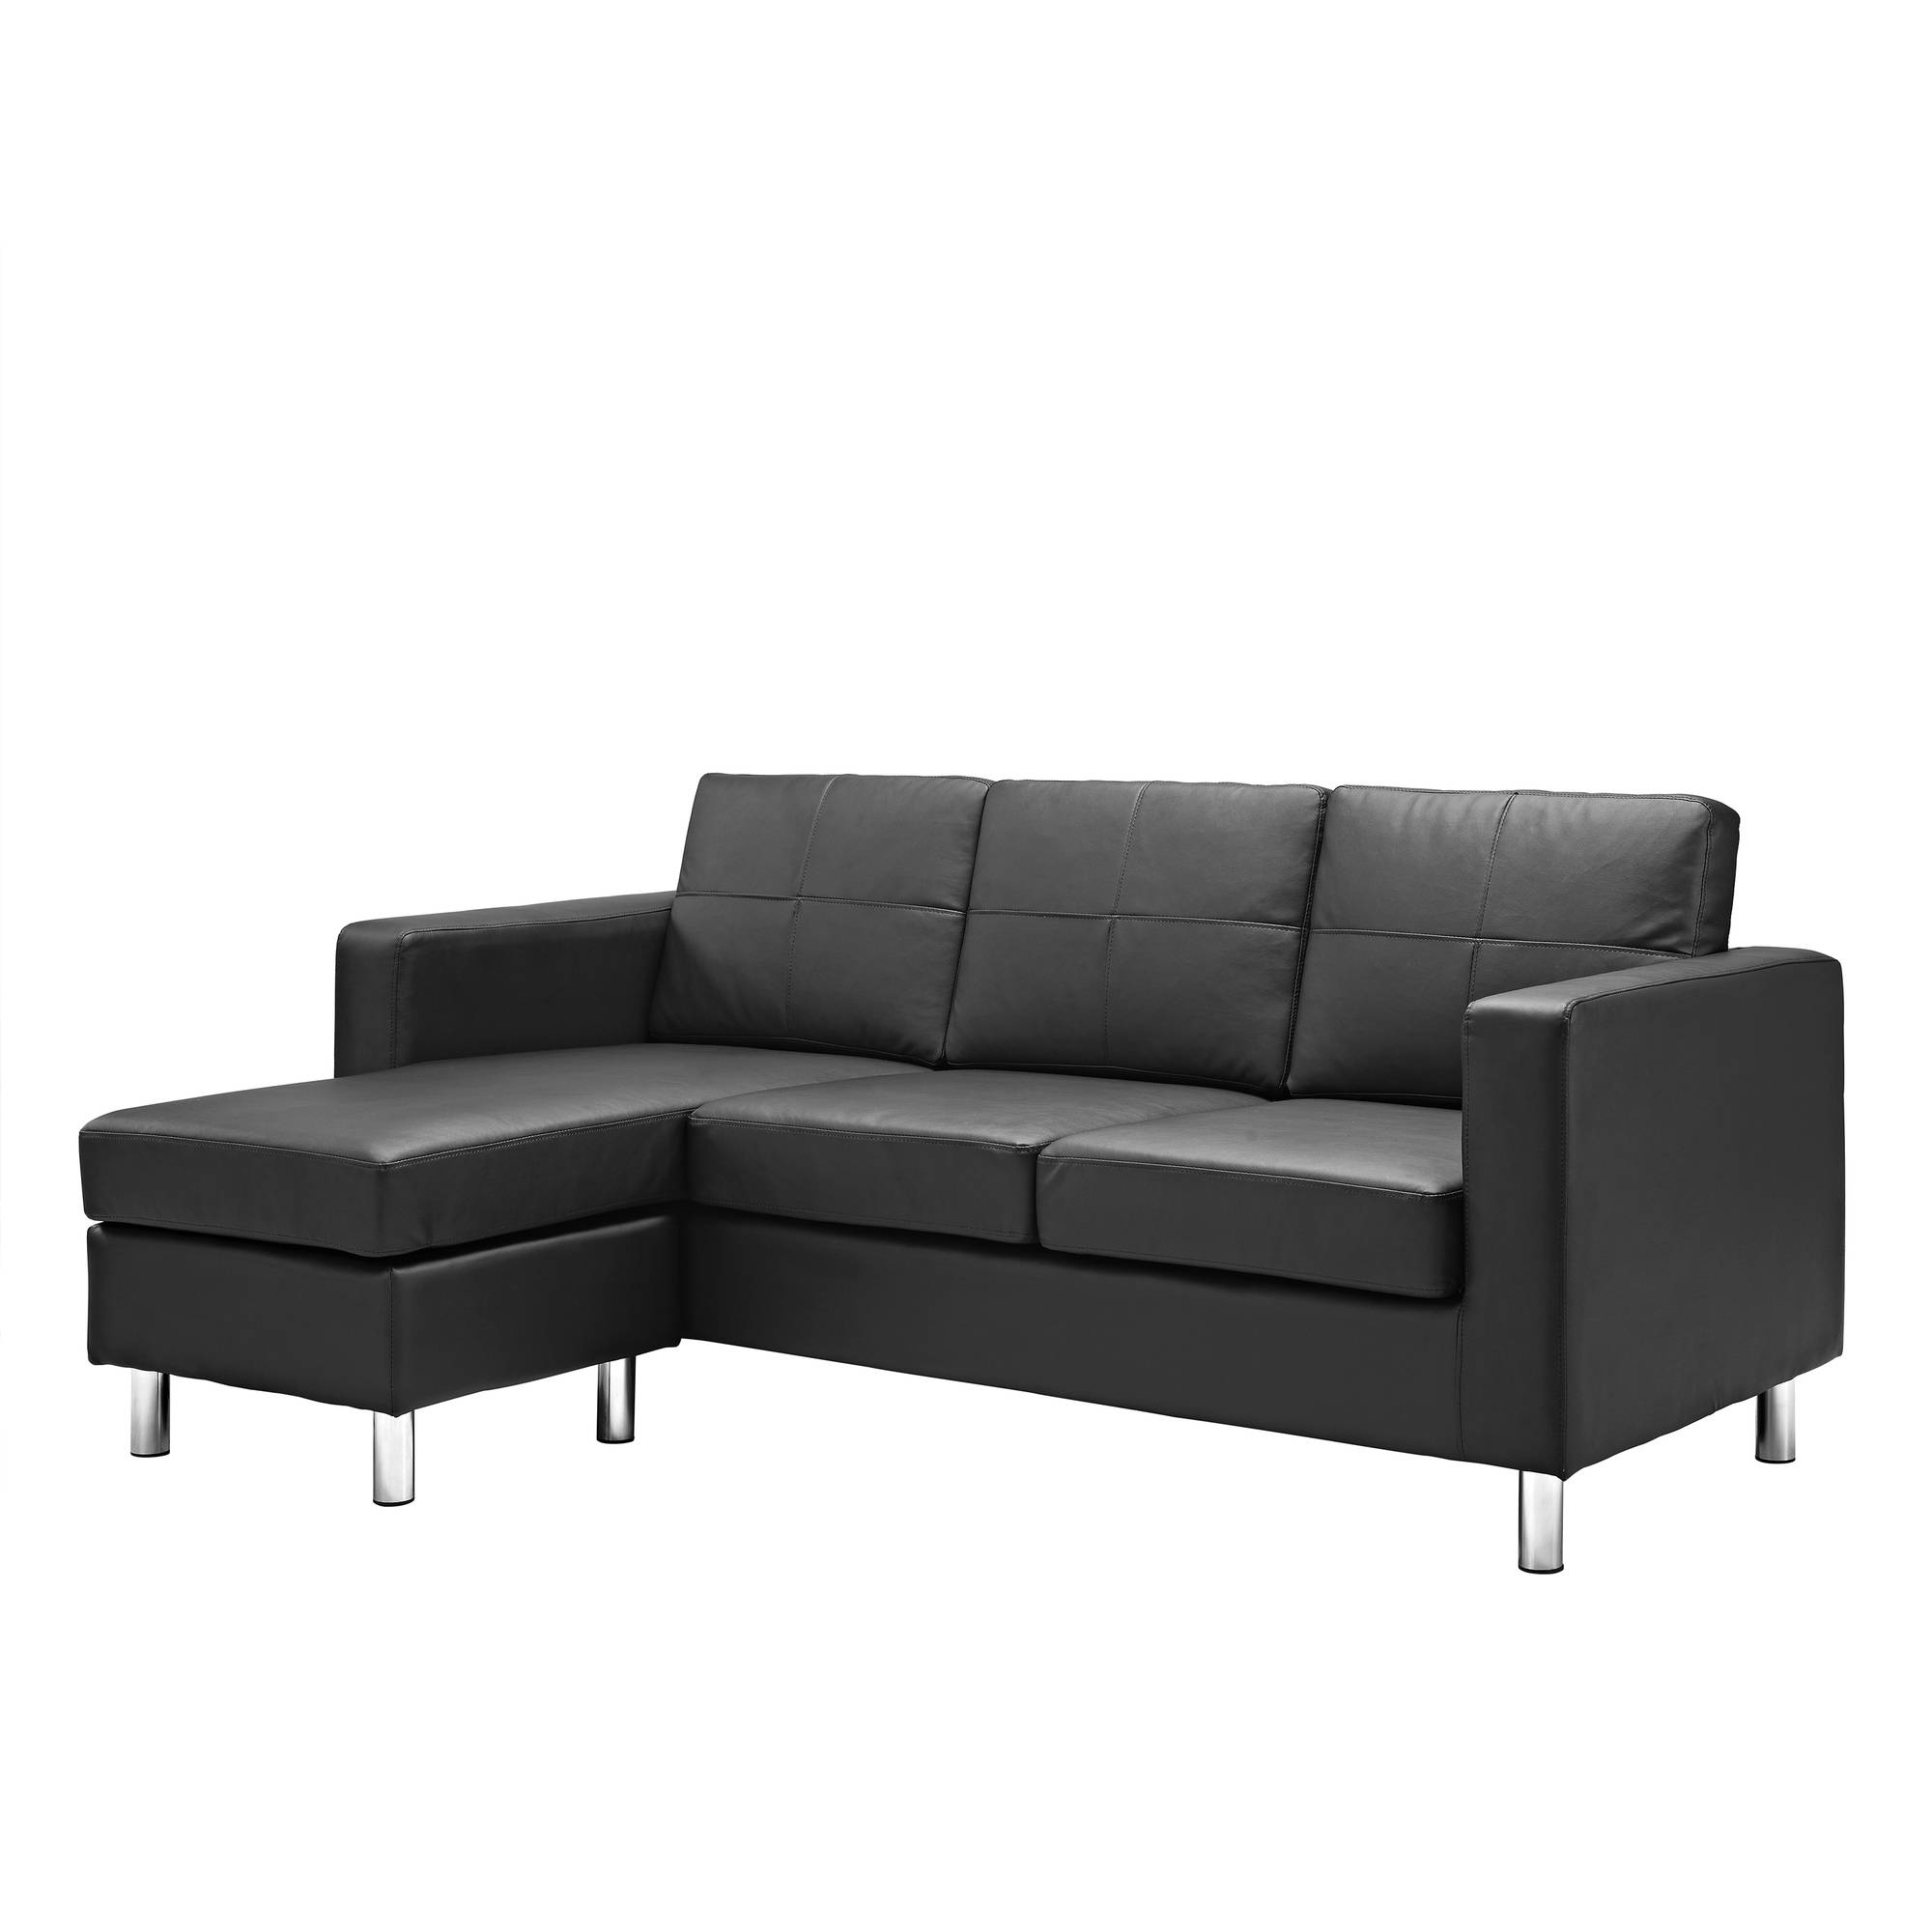 Dorel Living Small Spaces Configurable Sectional Sofa Multiple Pertaining To Durable Sectional Sofa (Image 9 of 15)